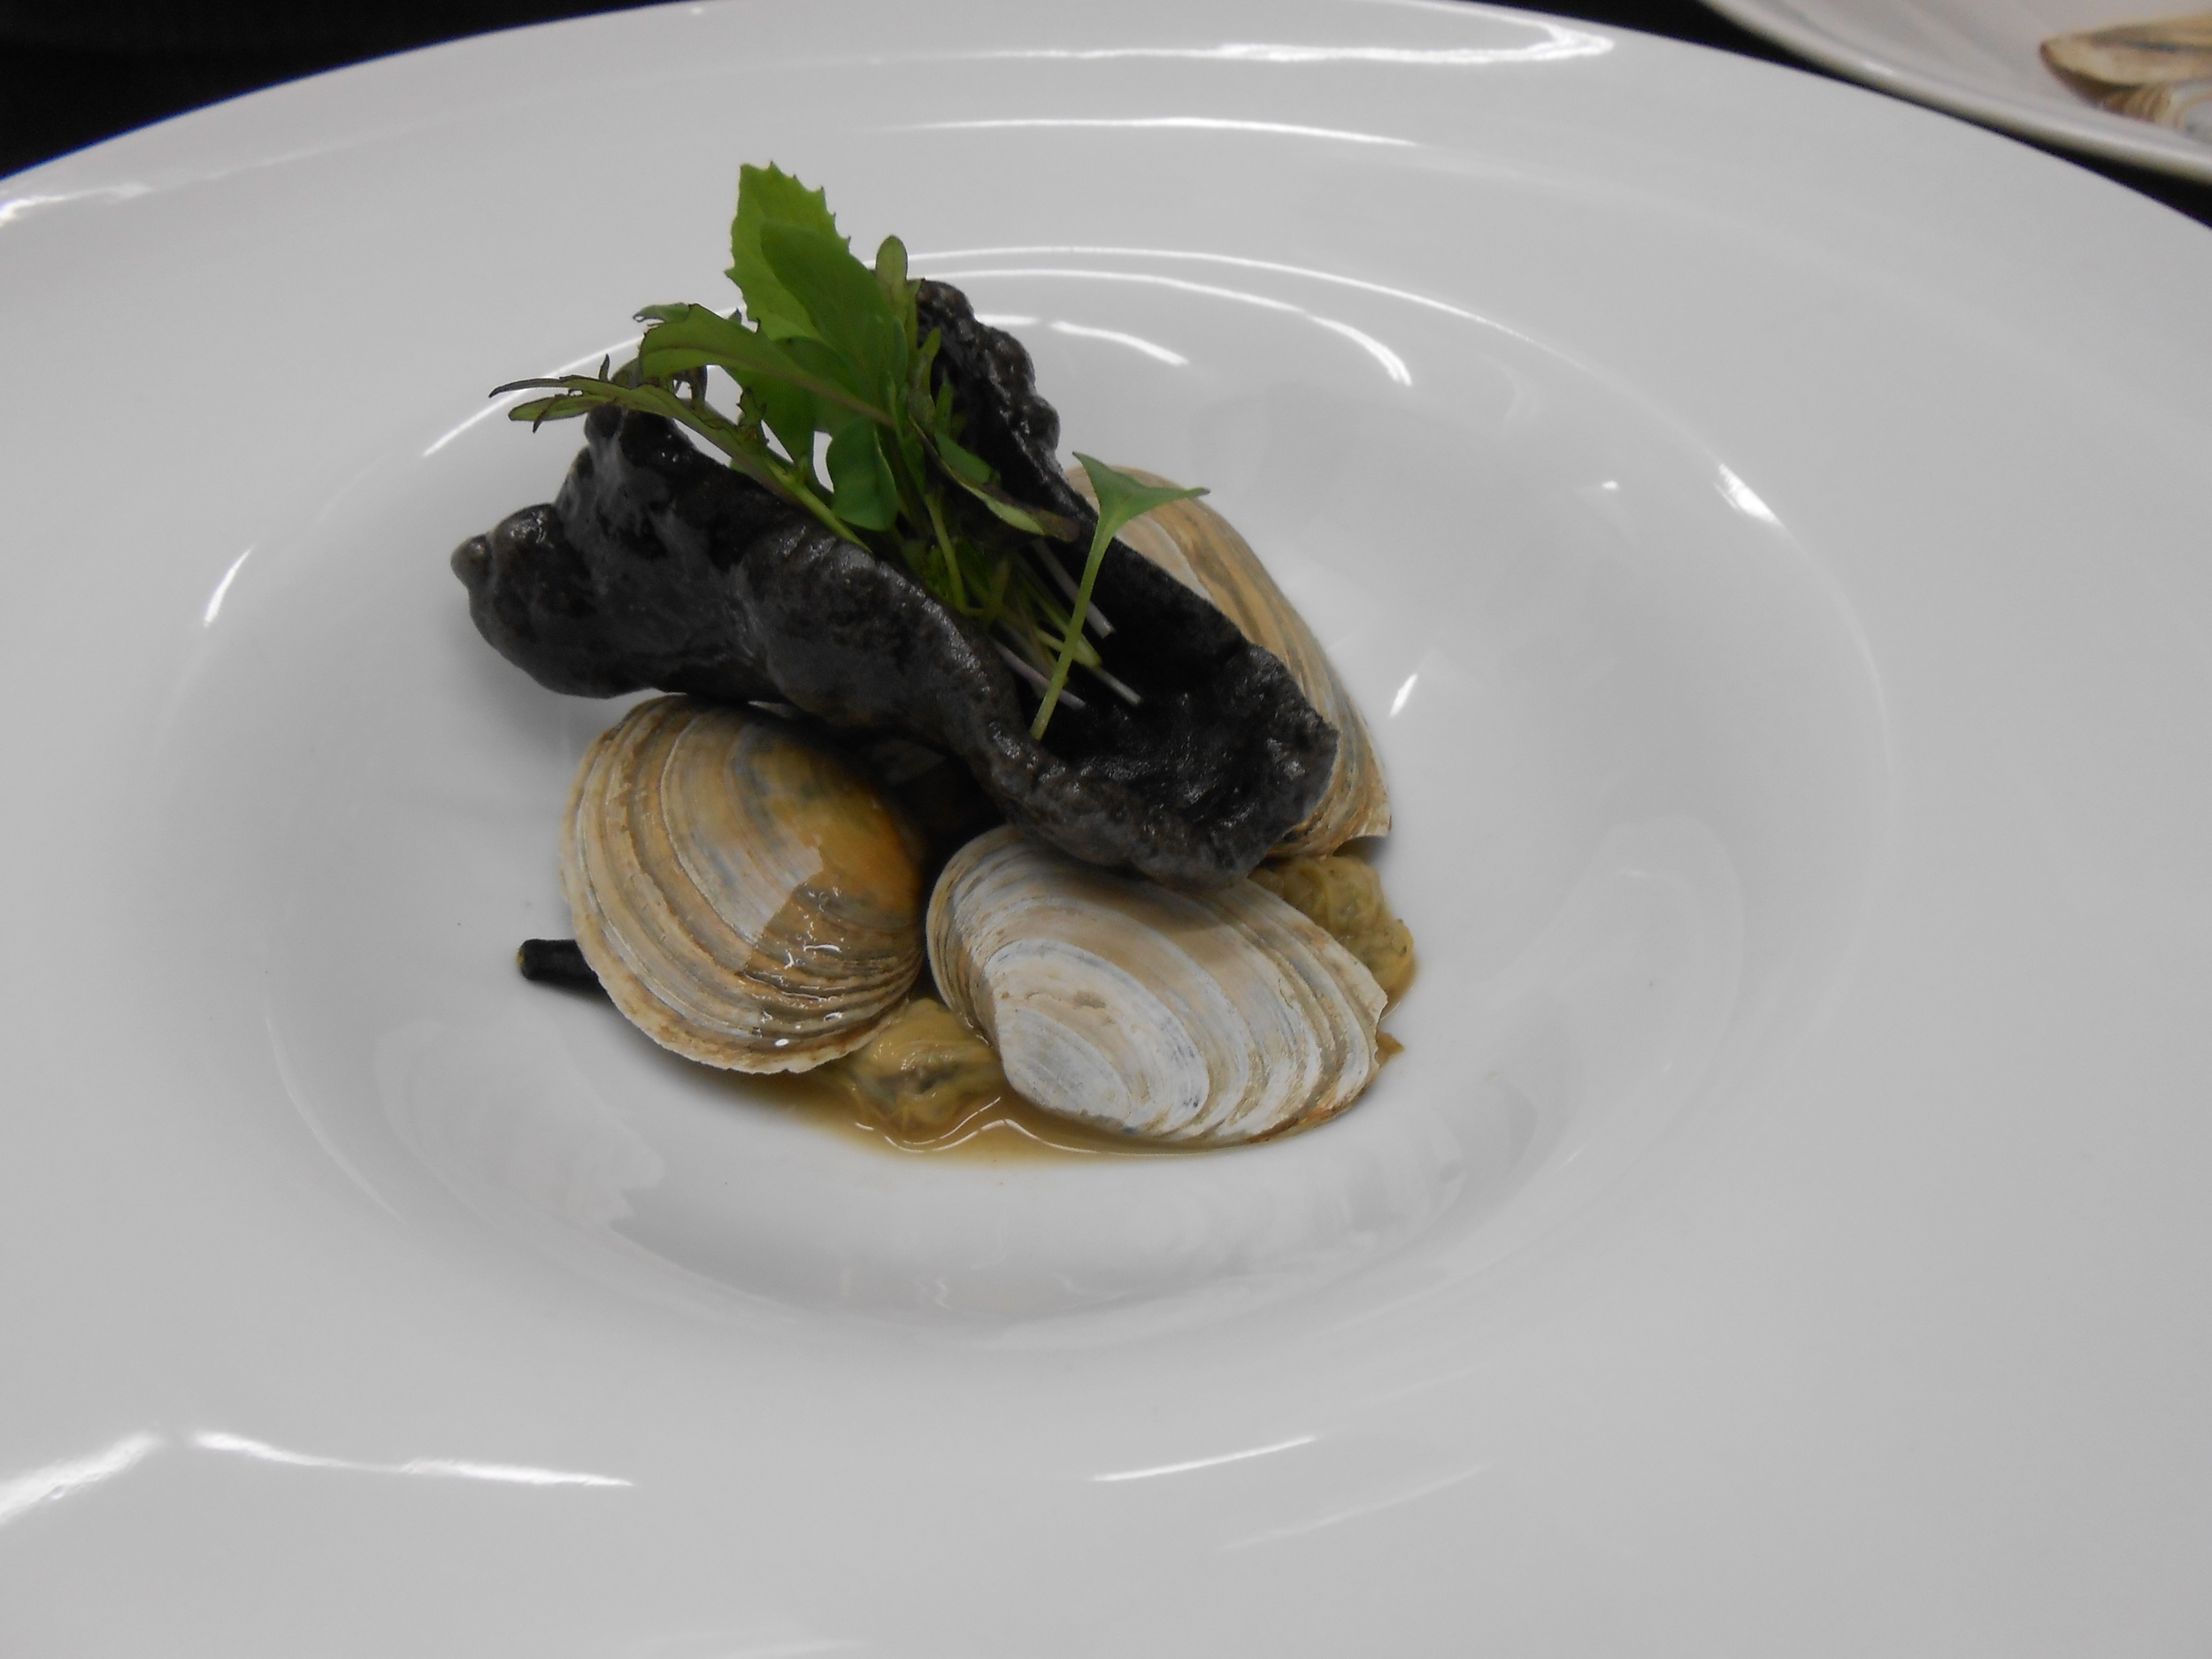 Second course: Steamers with Sake, Ginger, Soy Sauce, Prawn Crackers, Herbs, and Blossoms